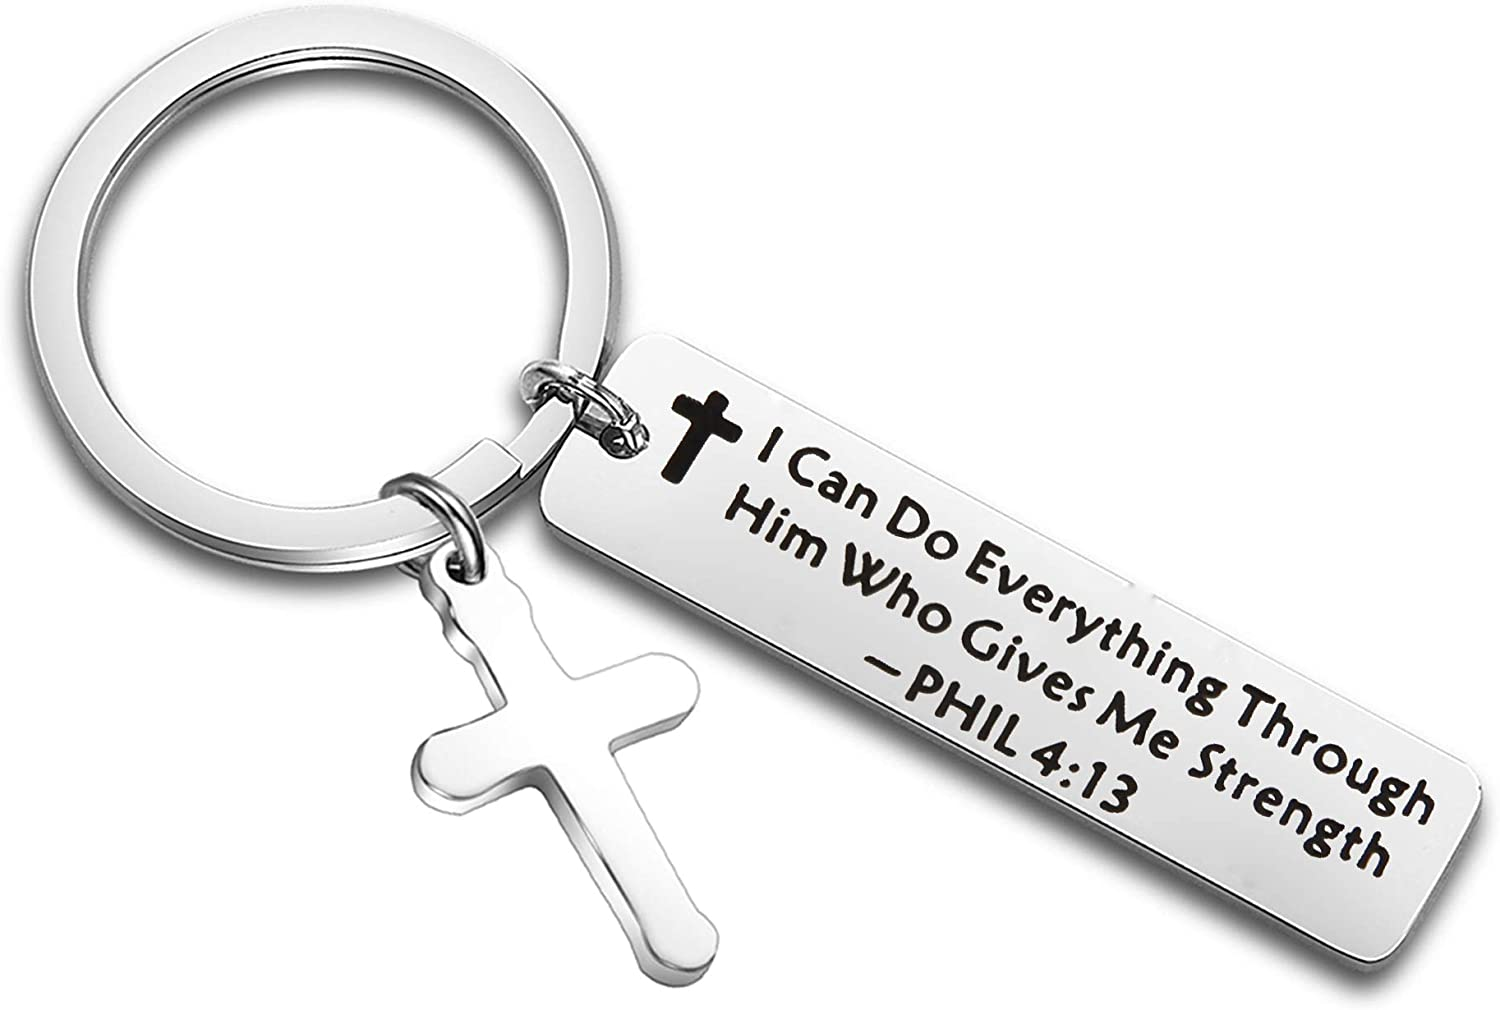 LQRI Christian Gifts All items free shipping I Can Do Through Everything Him M Gives Bombing free shipping Who